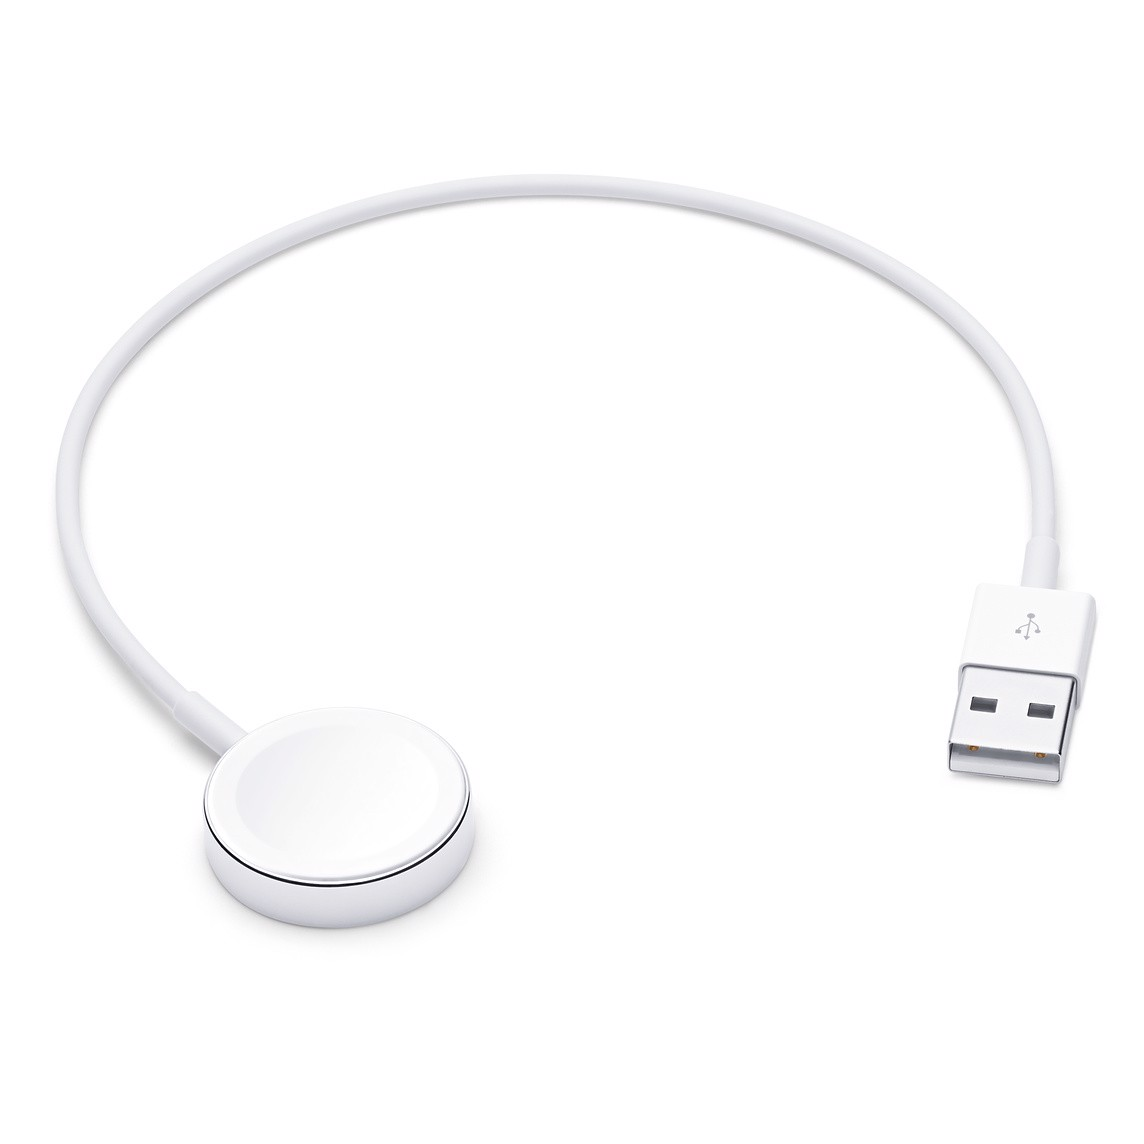 Dây sạc Apple Watch Magnetic Charger, NOBOX